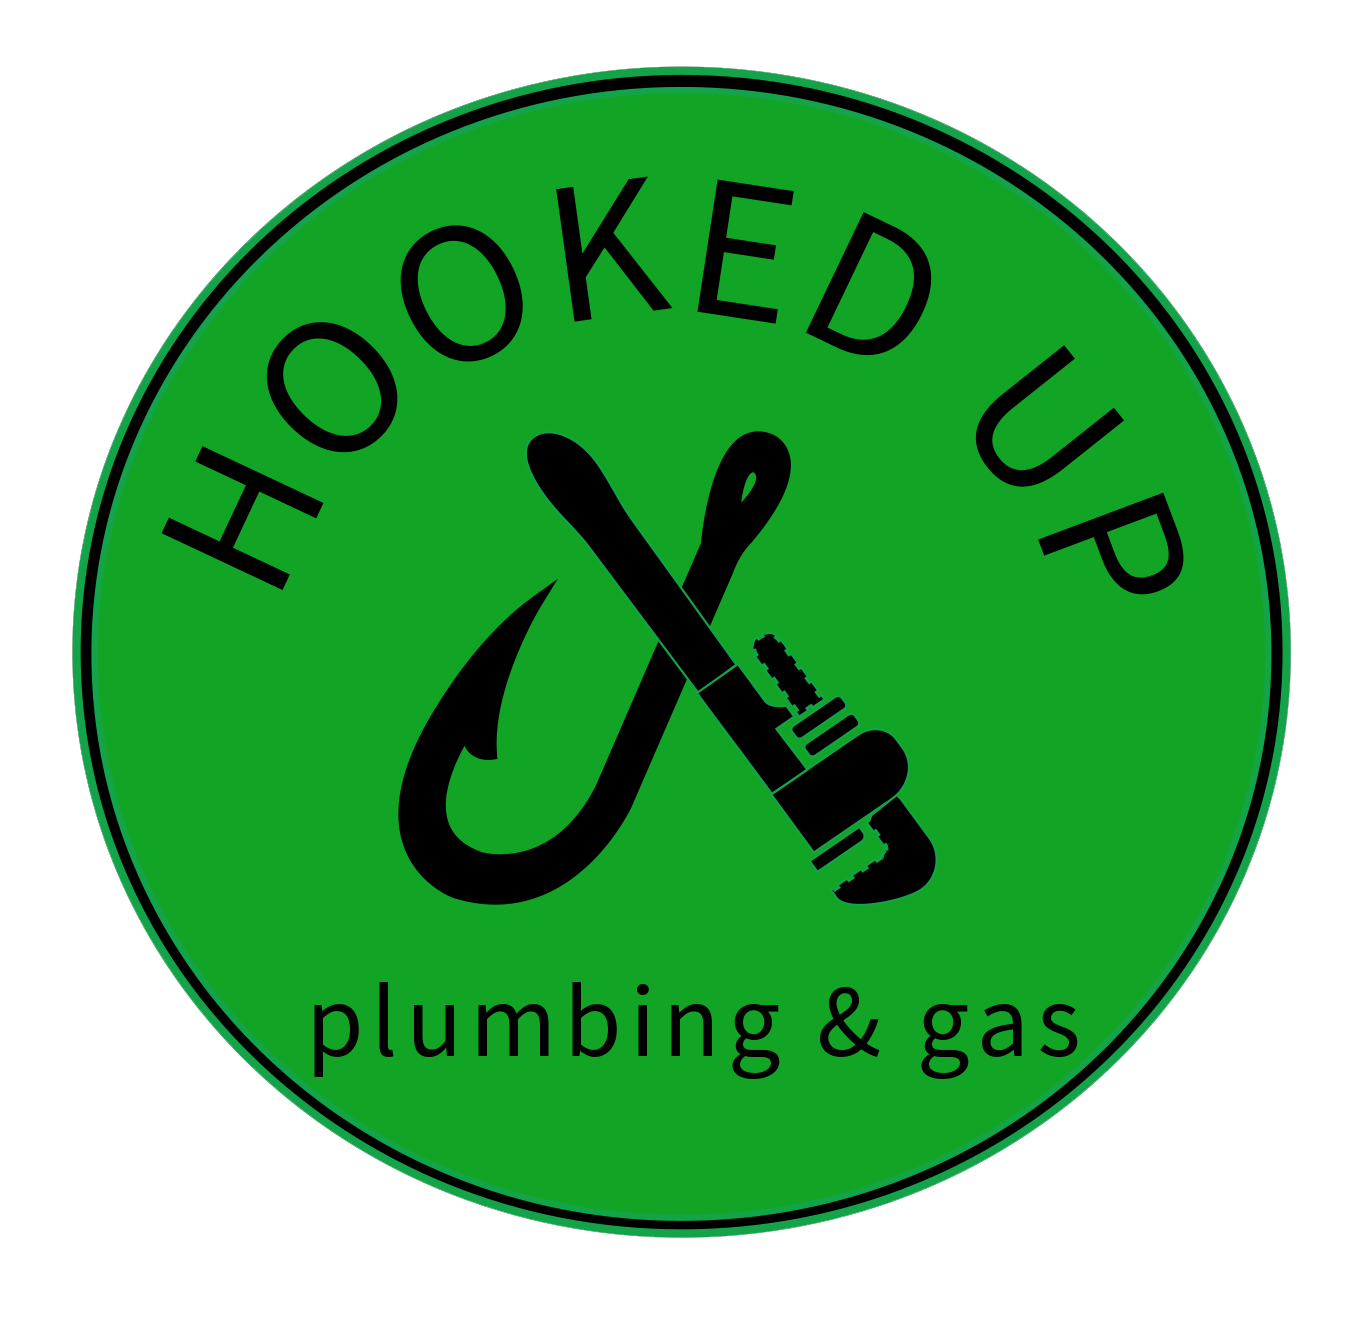 Hooked Up Plumbing & Gas